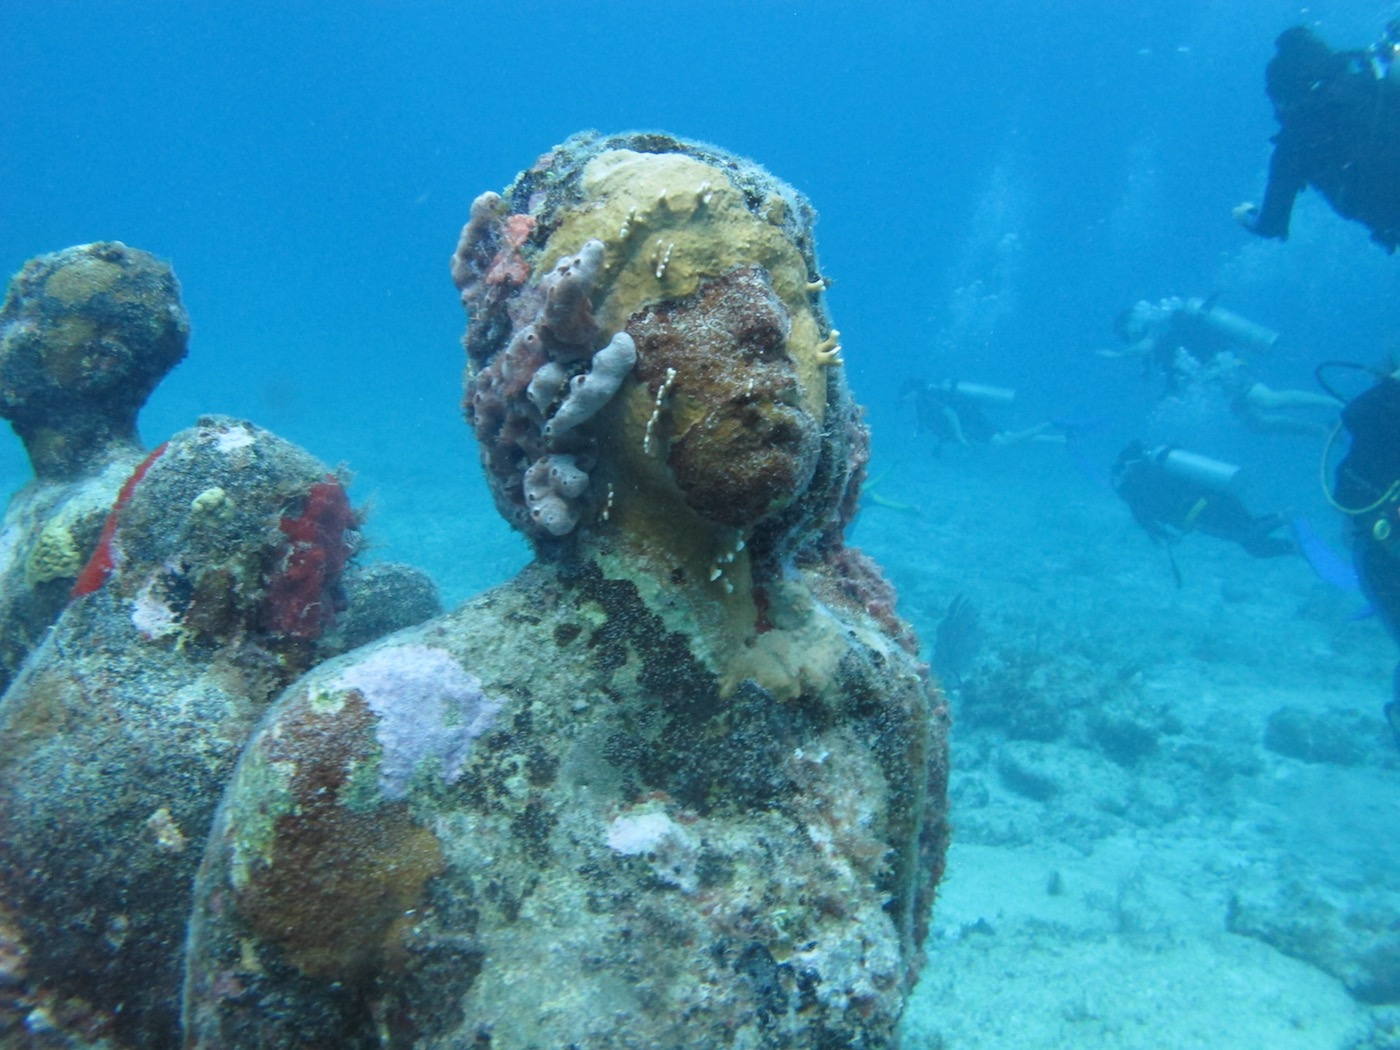 MUSA-Underwater-Museum-Snorkeling-Scuba-Diving-Tours-Isla-Mujeres-Carey-Dive-Center-13